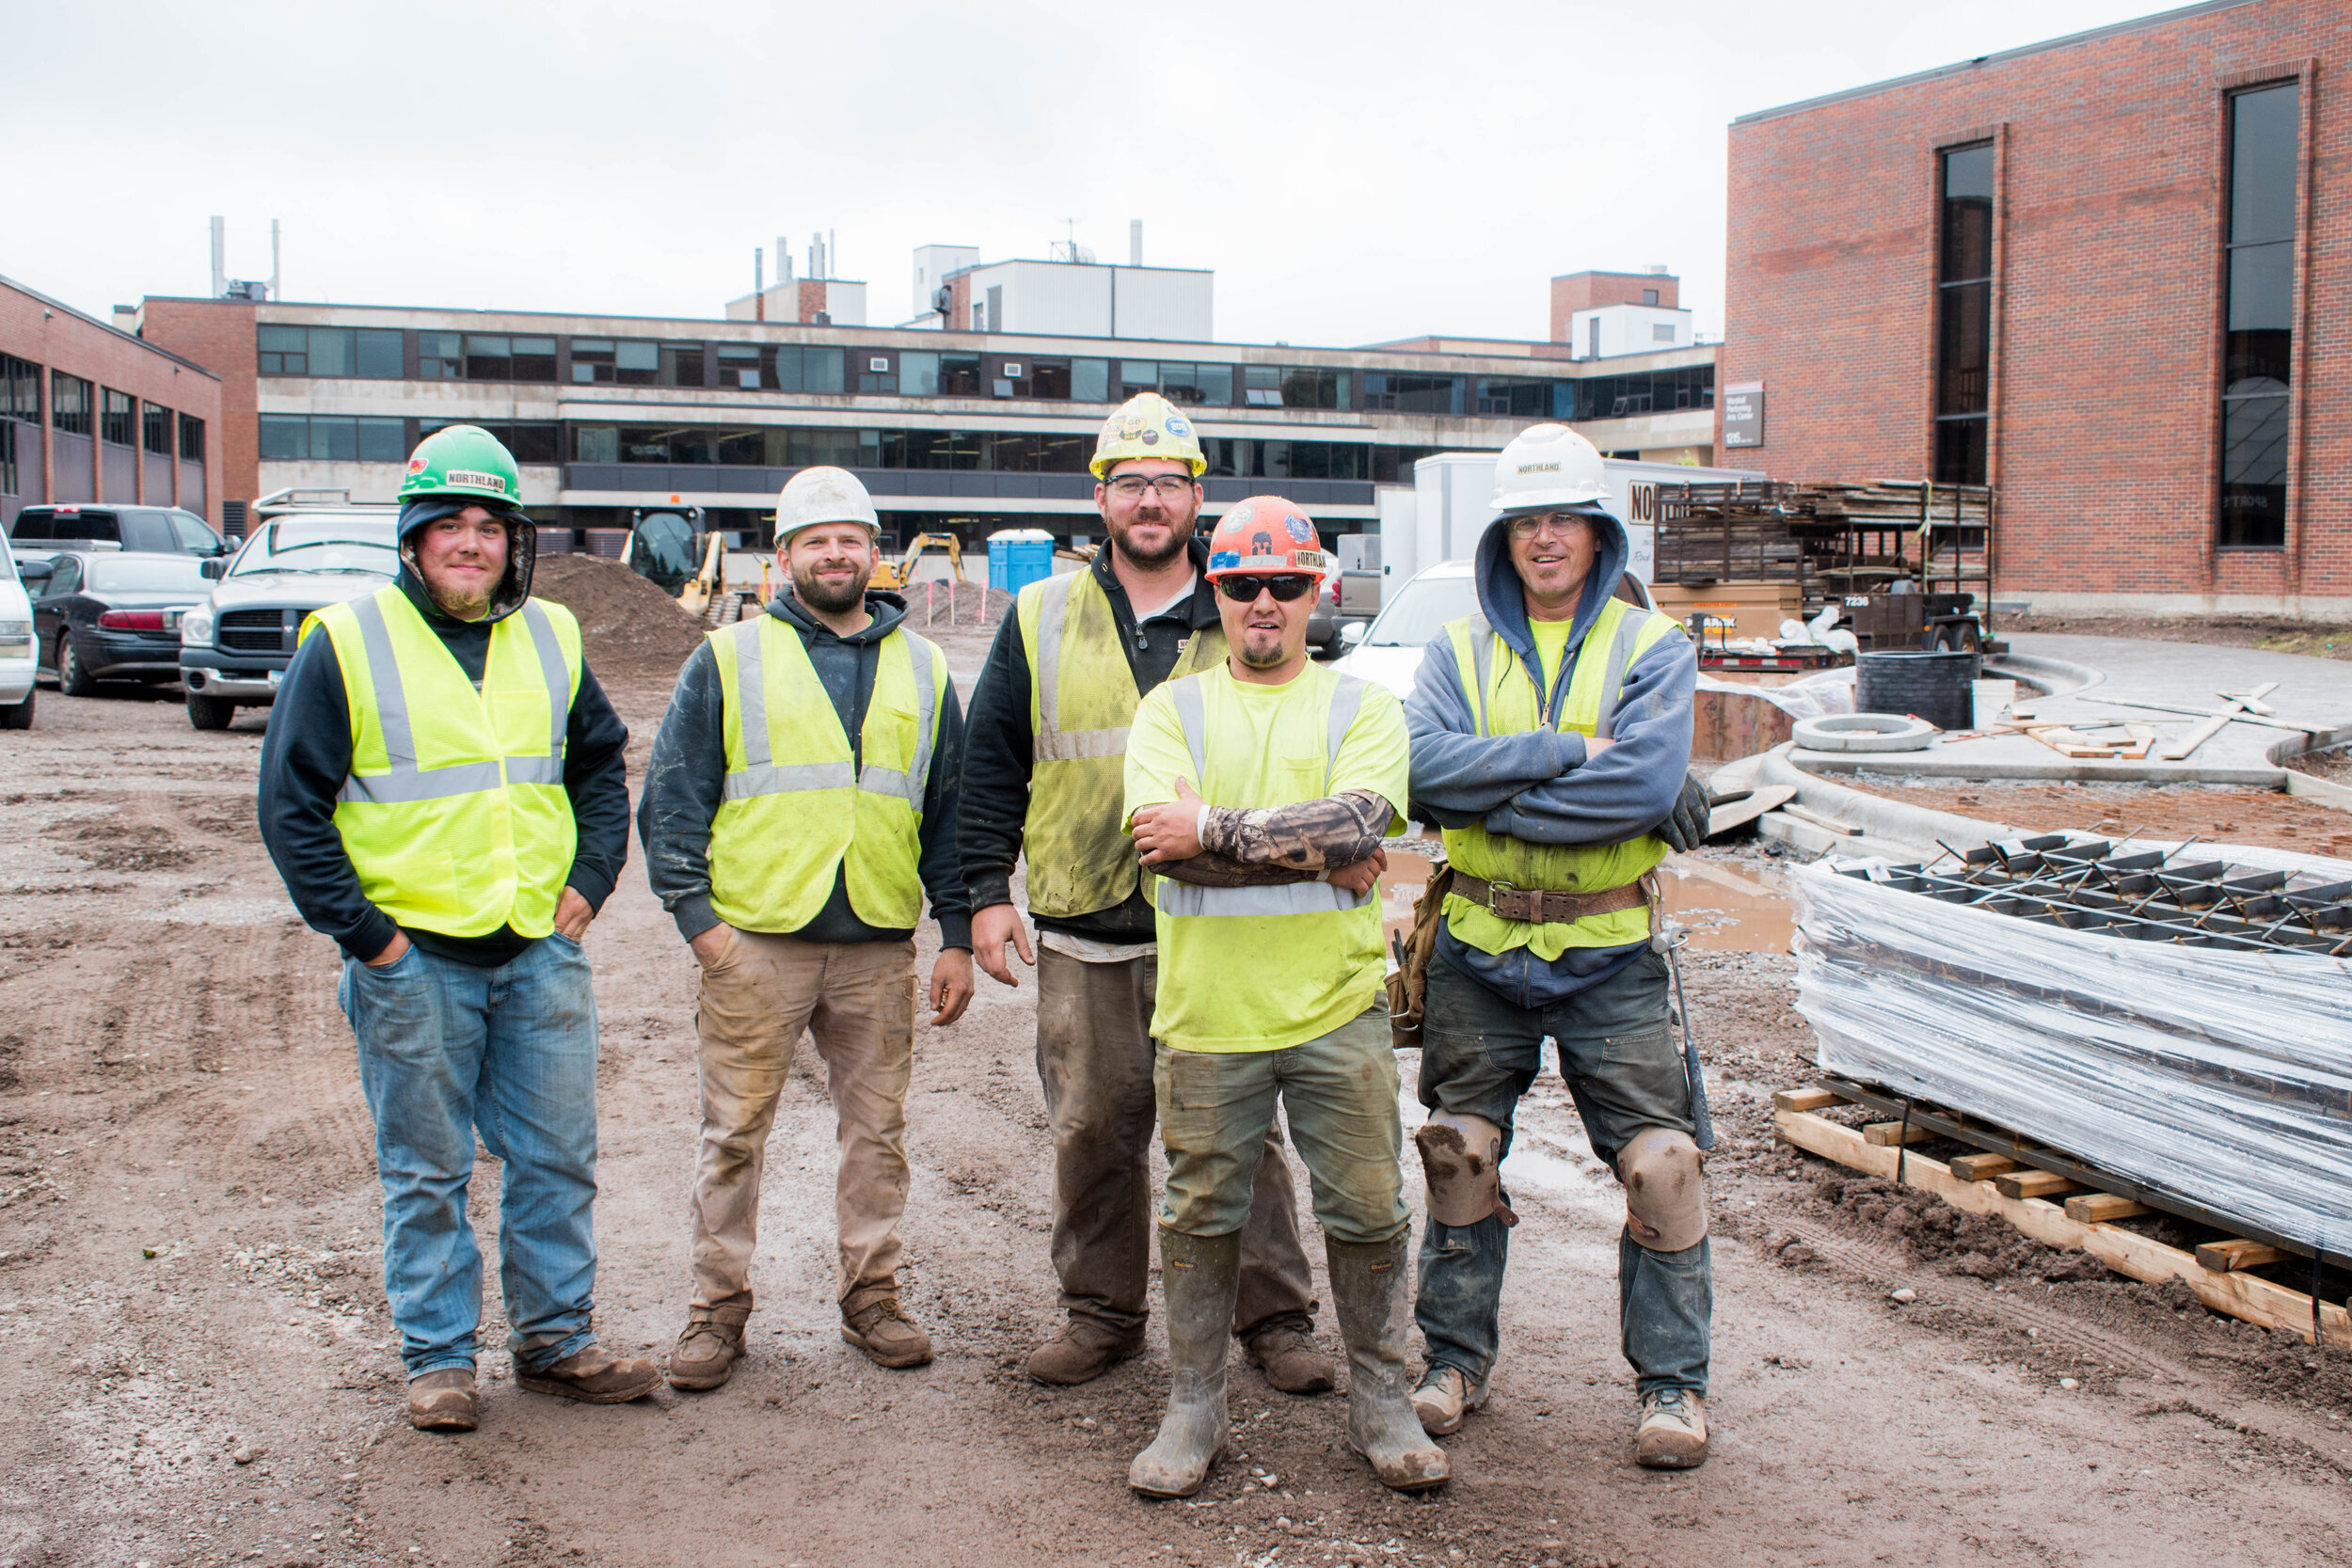 Construction Workers (From Left) Tony Moselle, Adam Wittrock, Jace Oien, Charlie Mccune, John Engbretson on site in Ordean Court. Photo by Karli Kruse